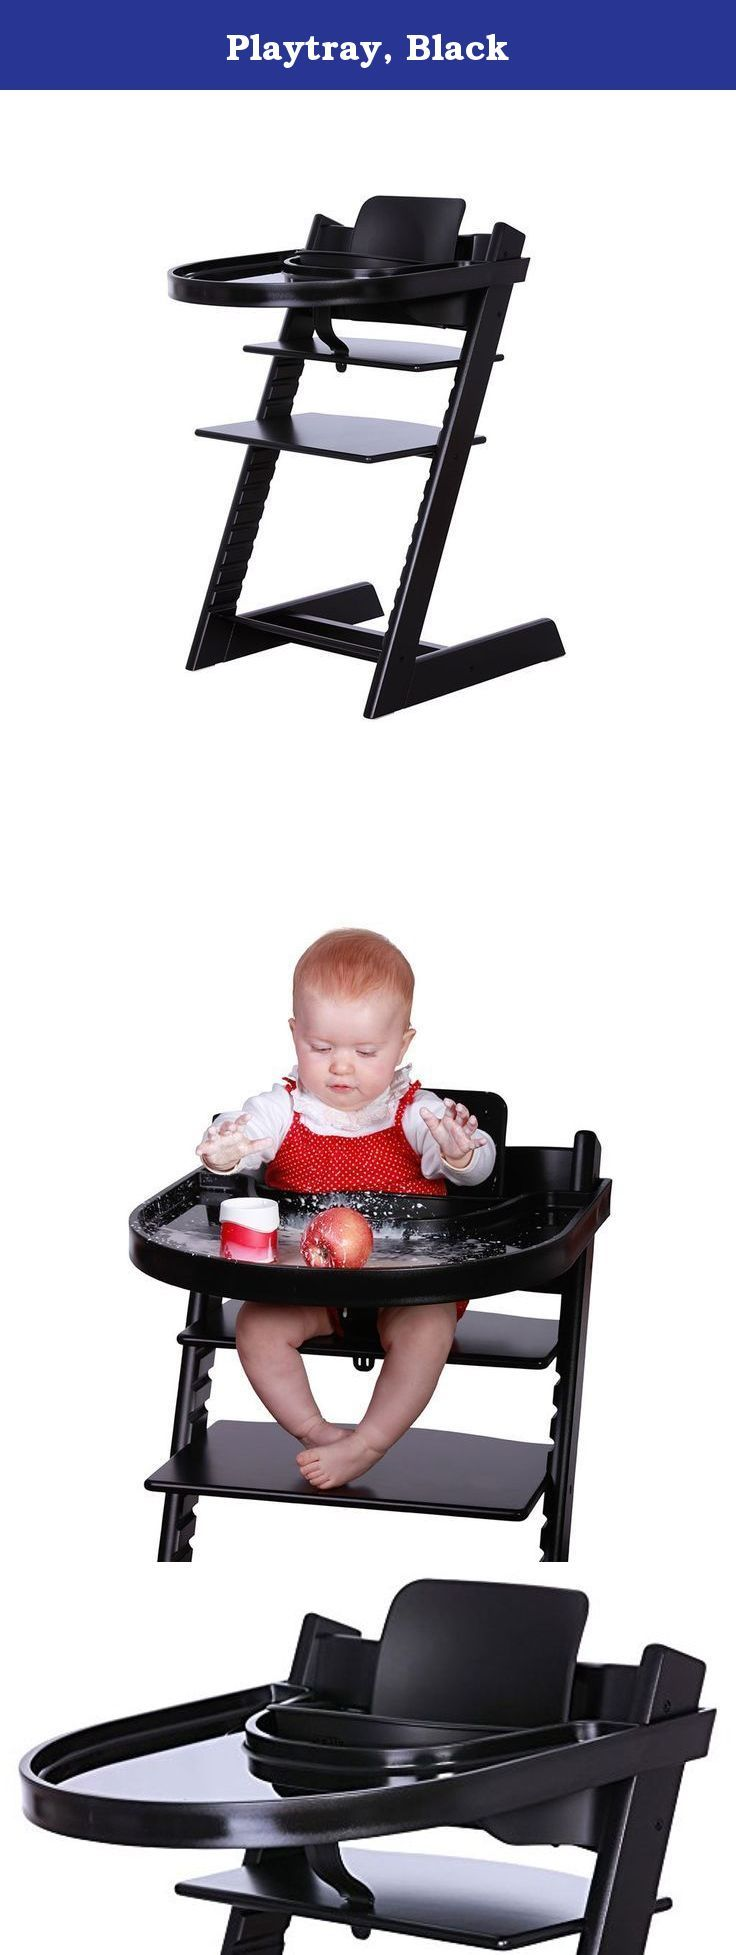 Playtray, Black. Play tray is a tray designed for the stokke tripp trapp chair. Play tray can be used when eating, playing and drawing and makes life easier for the child as well as its parents.